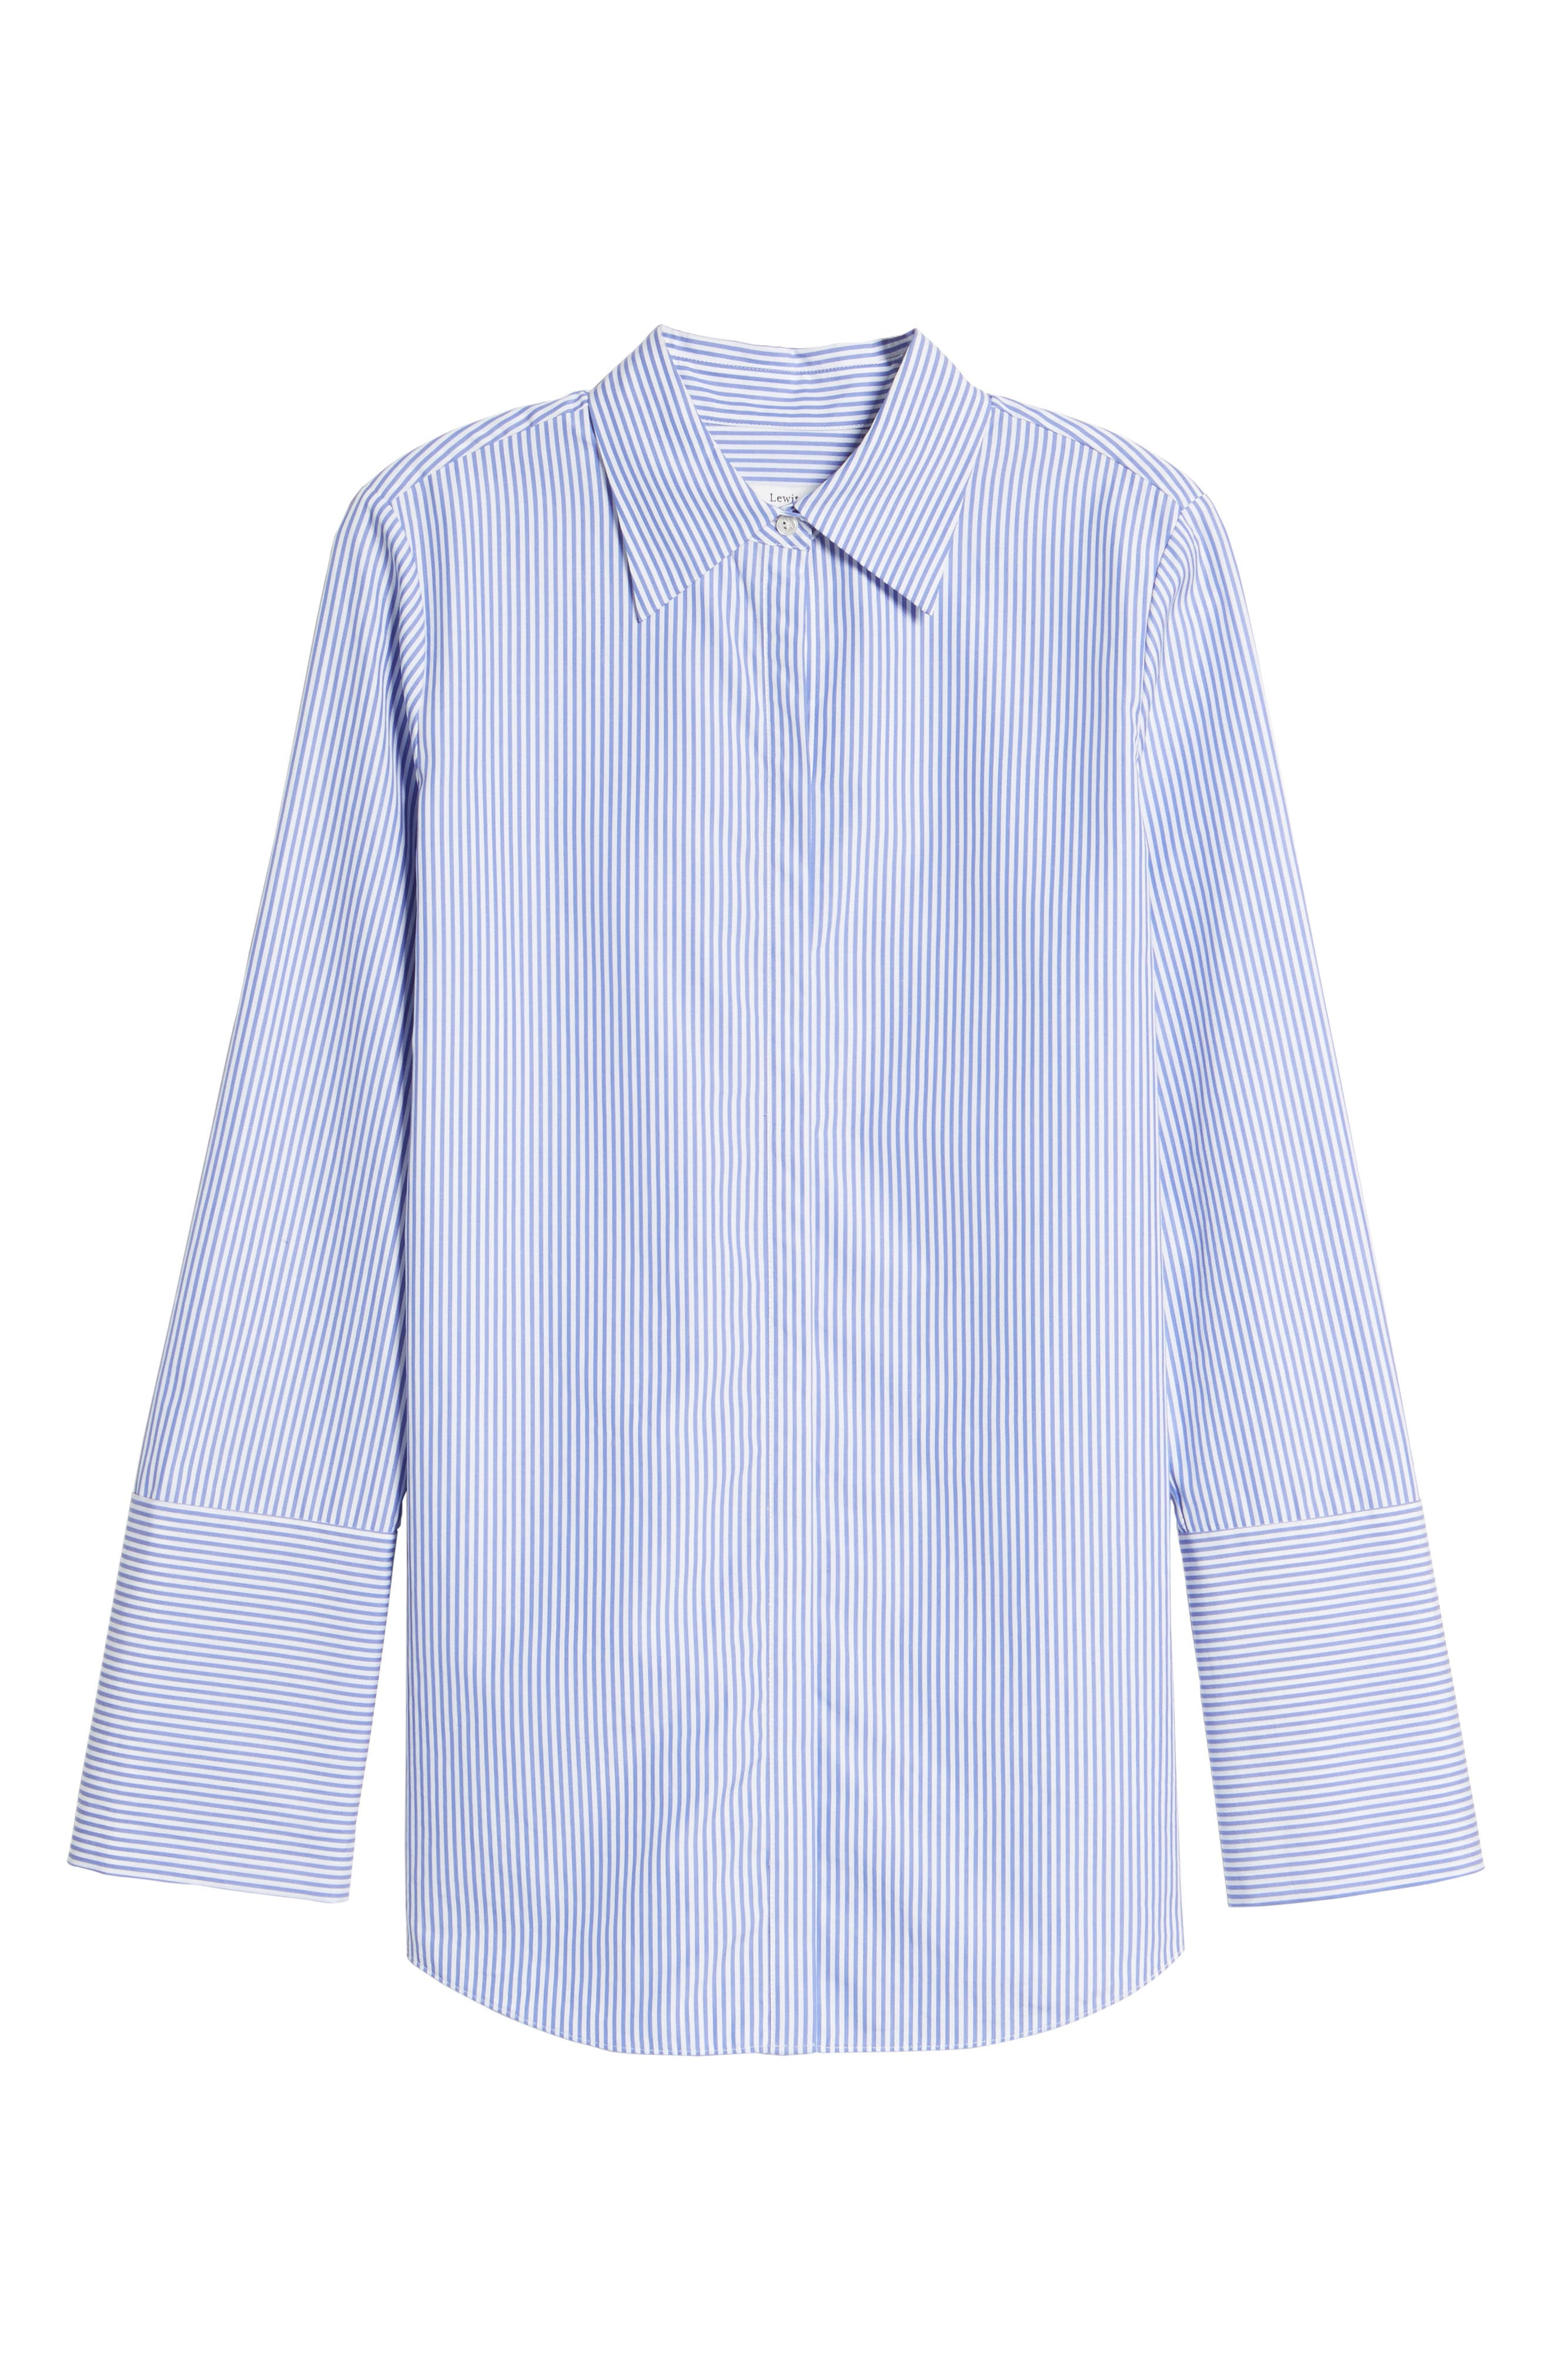 Exaggerated Cuff Stripe Shirt,                             Alternate thumbnail 6, color,                             450